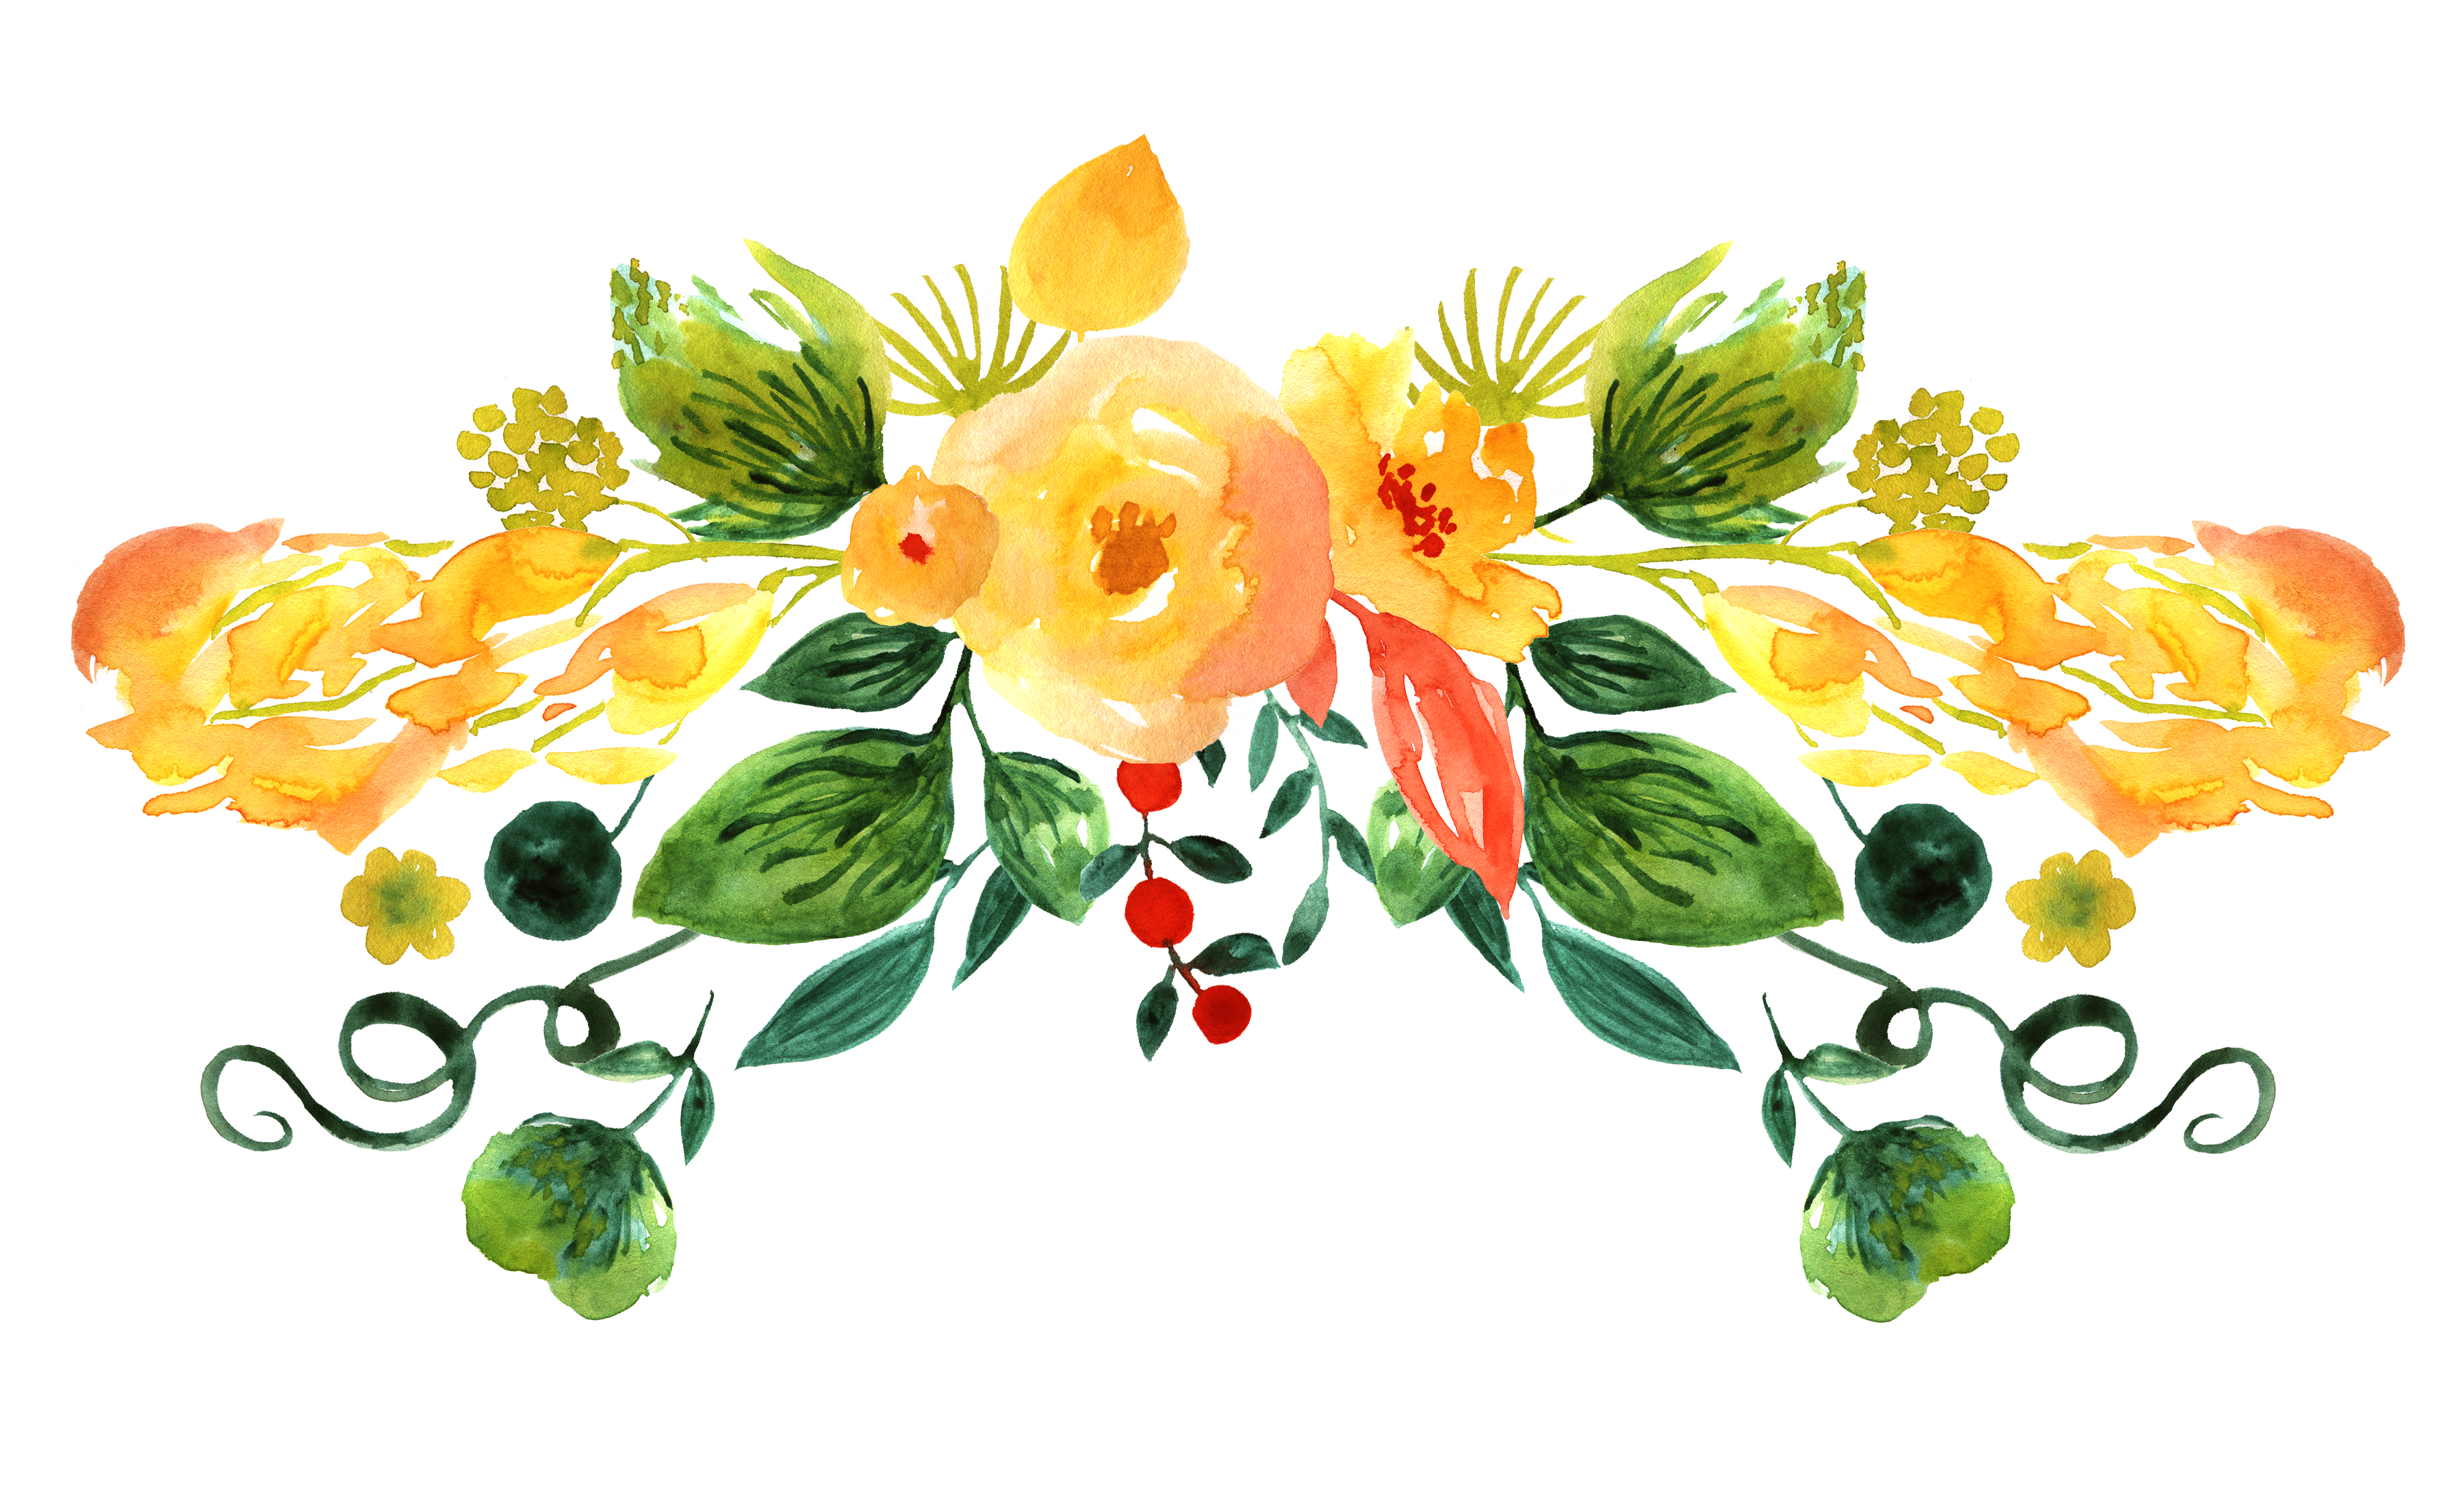 Floral design watercolor painting. Flores dibujo png jpg transparent